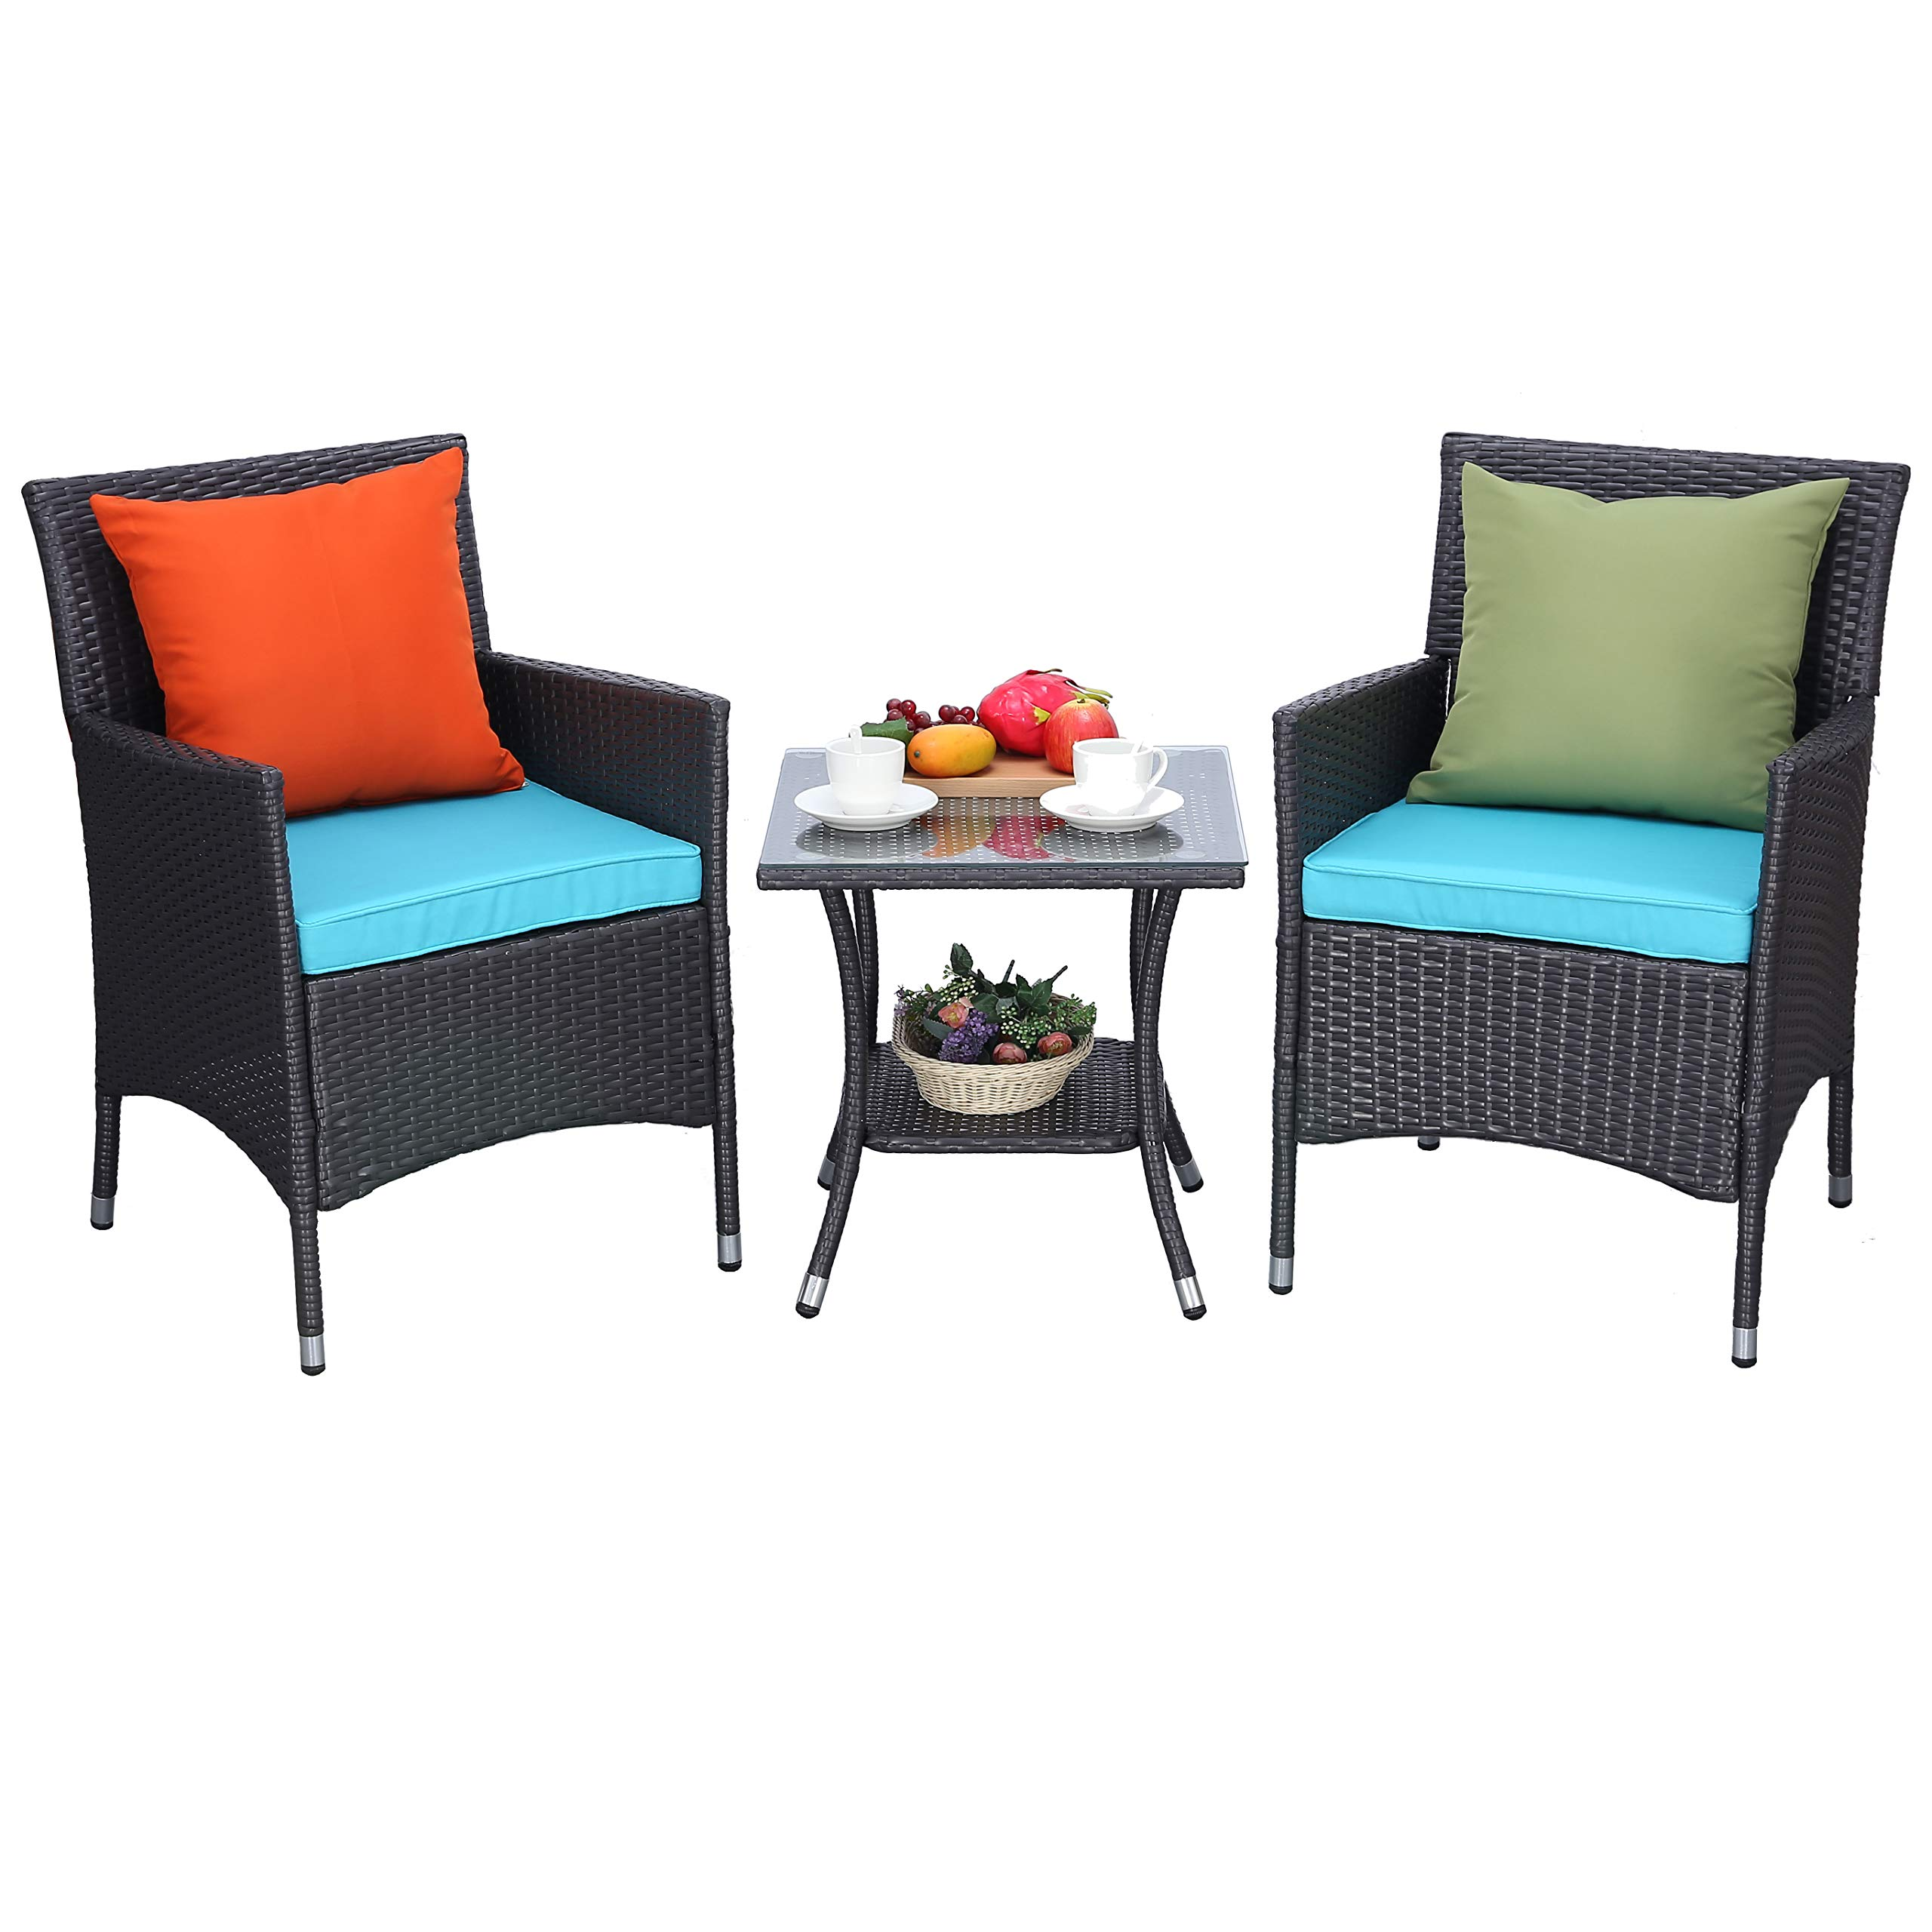 Do4U 3 Pieces Outdoor Patio Furniture Set Outdoor Wicker Conversation Set Cushioned PE Wicker Bistro Set Rattan Chairs with Coffee Table | Porch, Backyard, Pool Garden | Dining Chairs (638-EXP-TRQ)